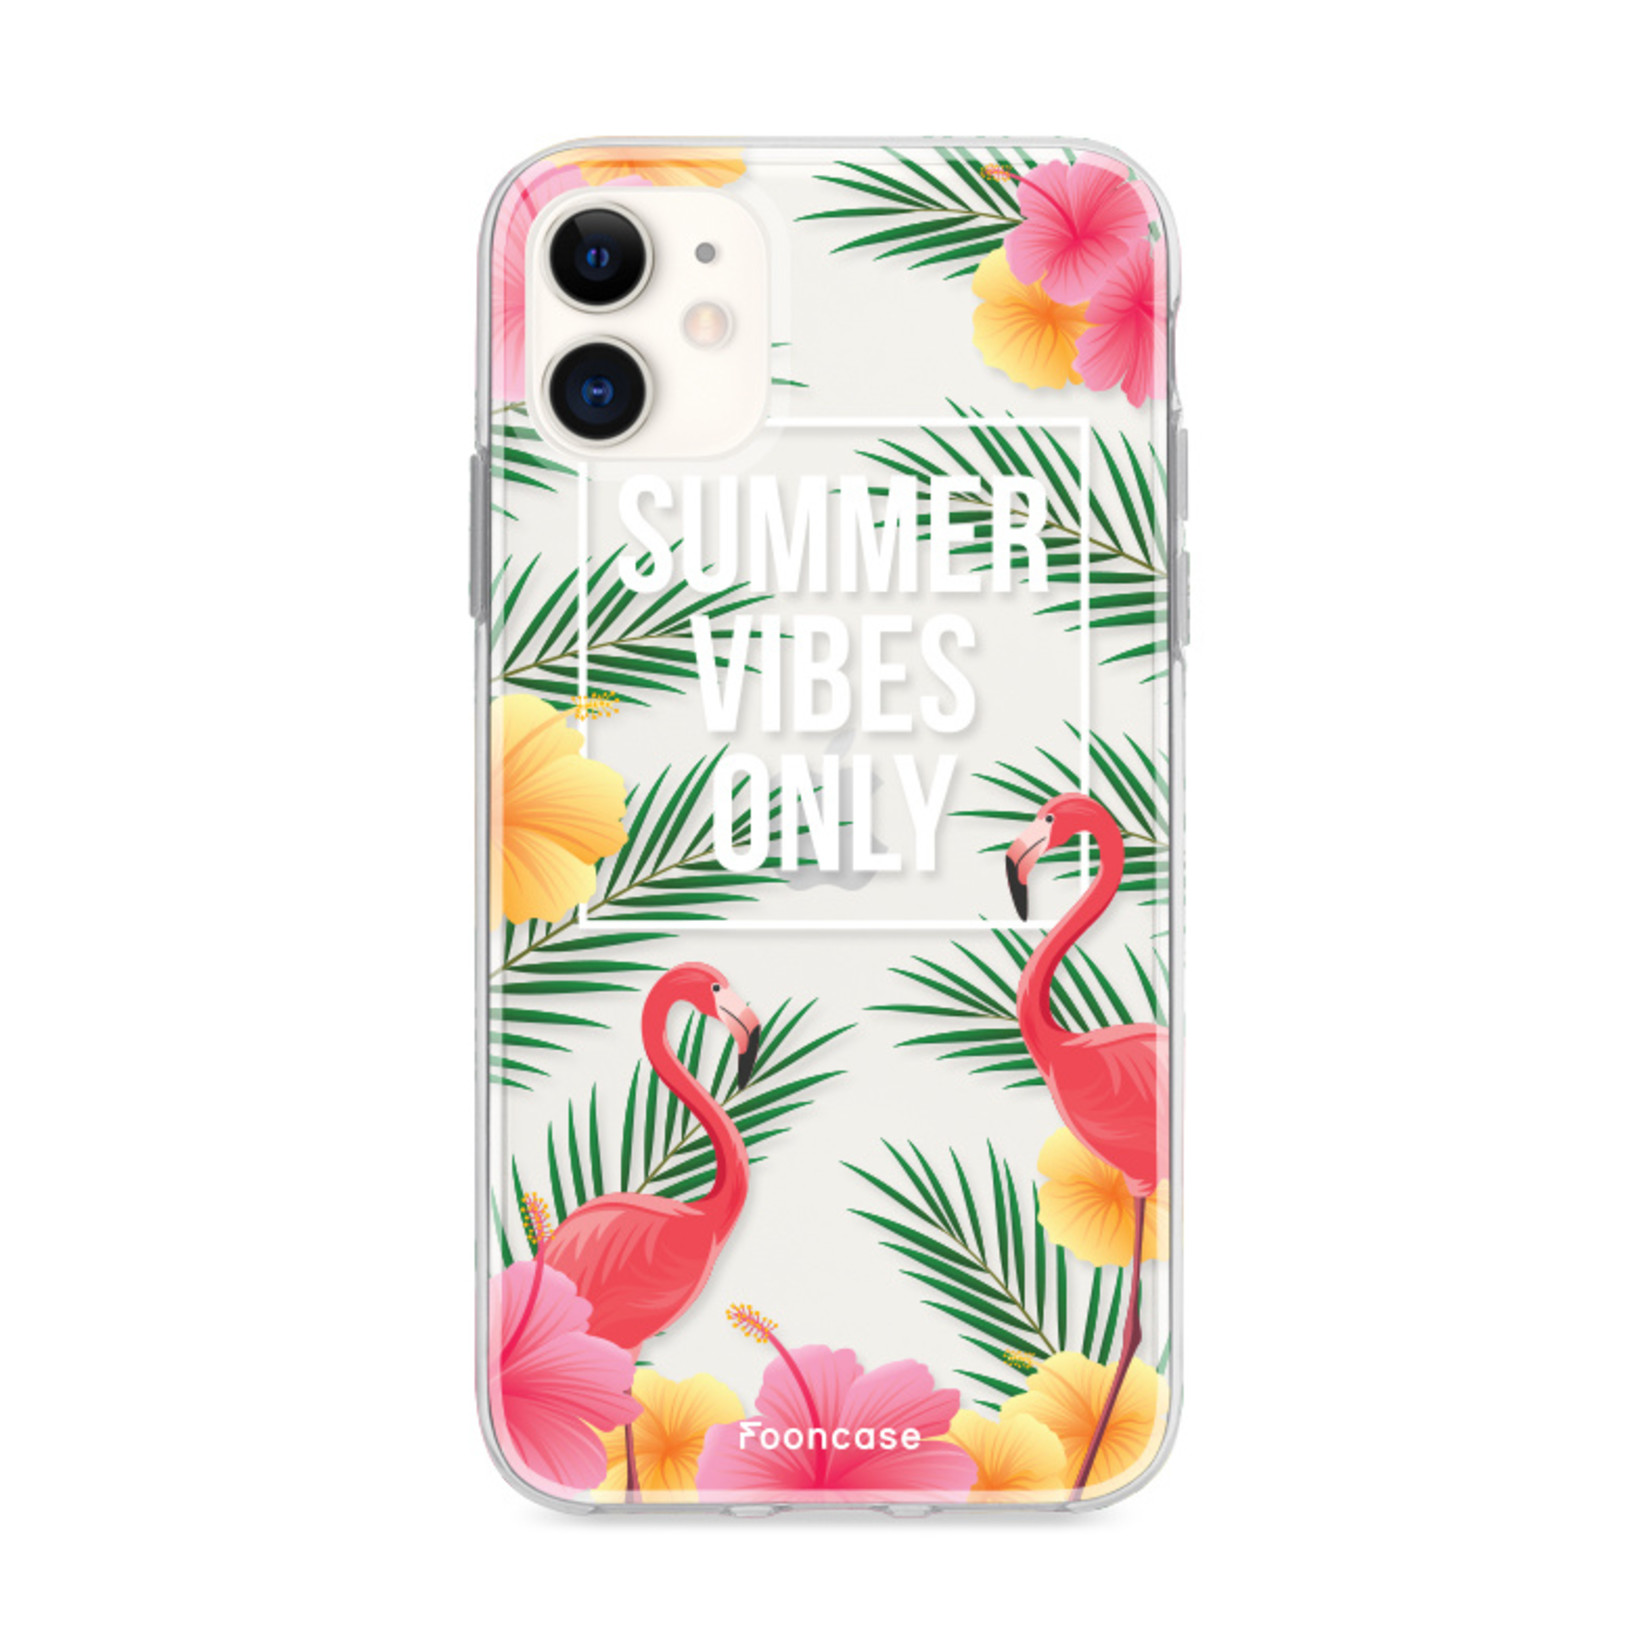 FOONCASE iPhone 12 Mini hoesje TPU Soft Case - Back Cover - Summer Vibes Only